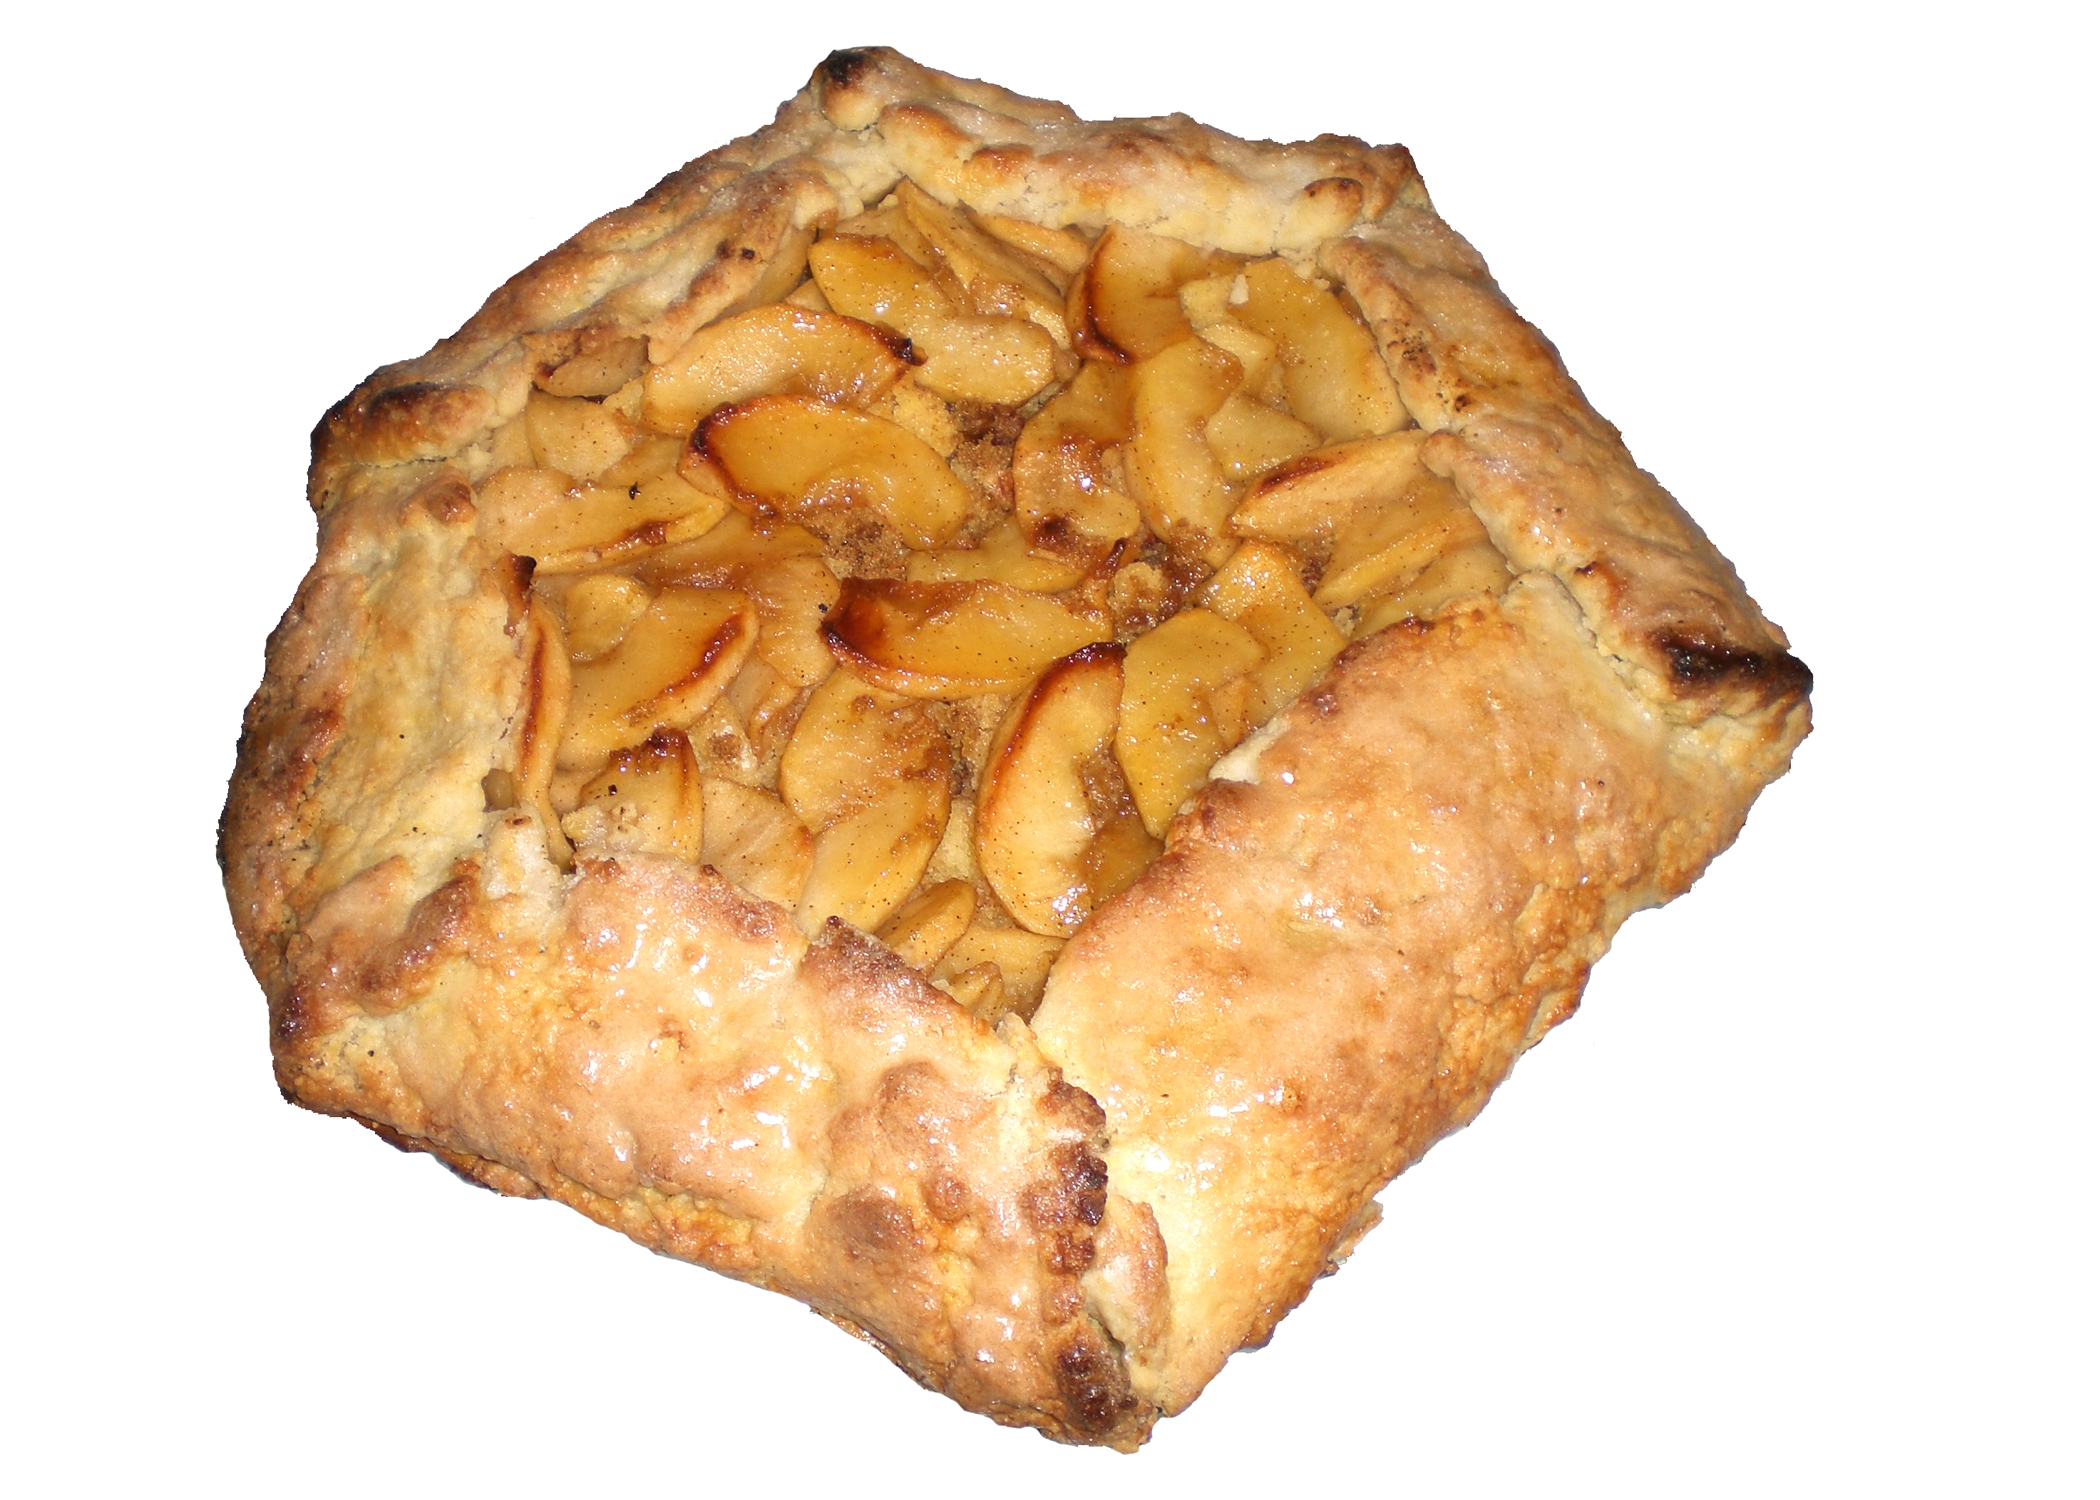 Apple Pie (no pan)